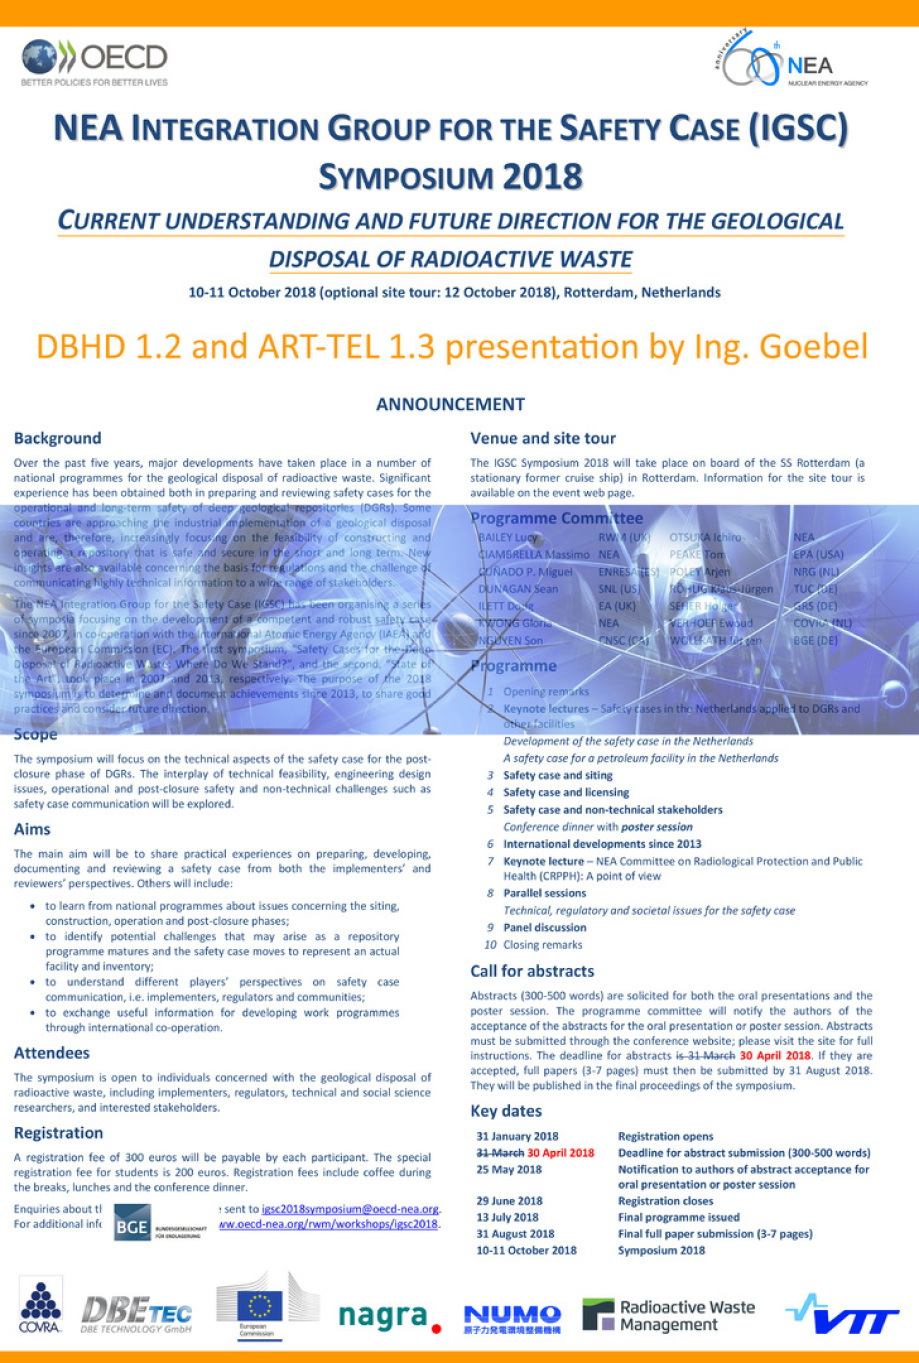 igsc2018_poster_Rotterdamm_meeting_nuclear_waste_repository_planning_building_DBHD_ART-TEL_Ing_Goebel